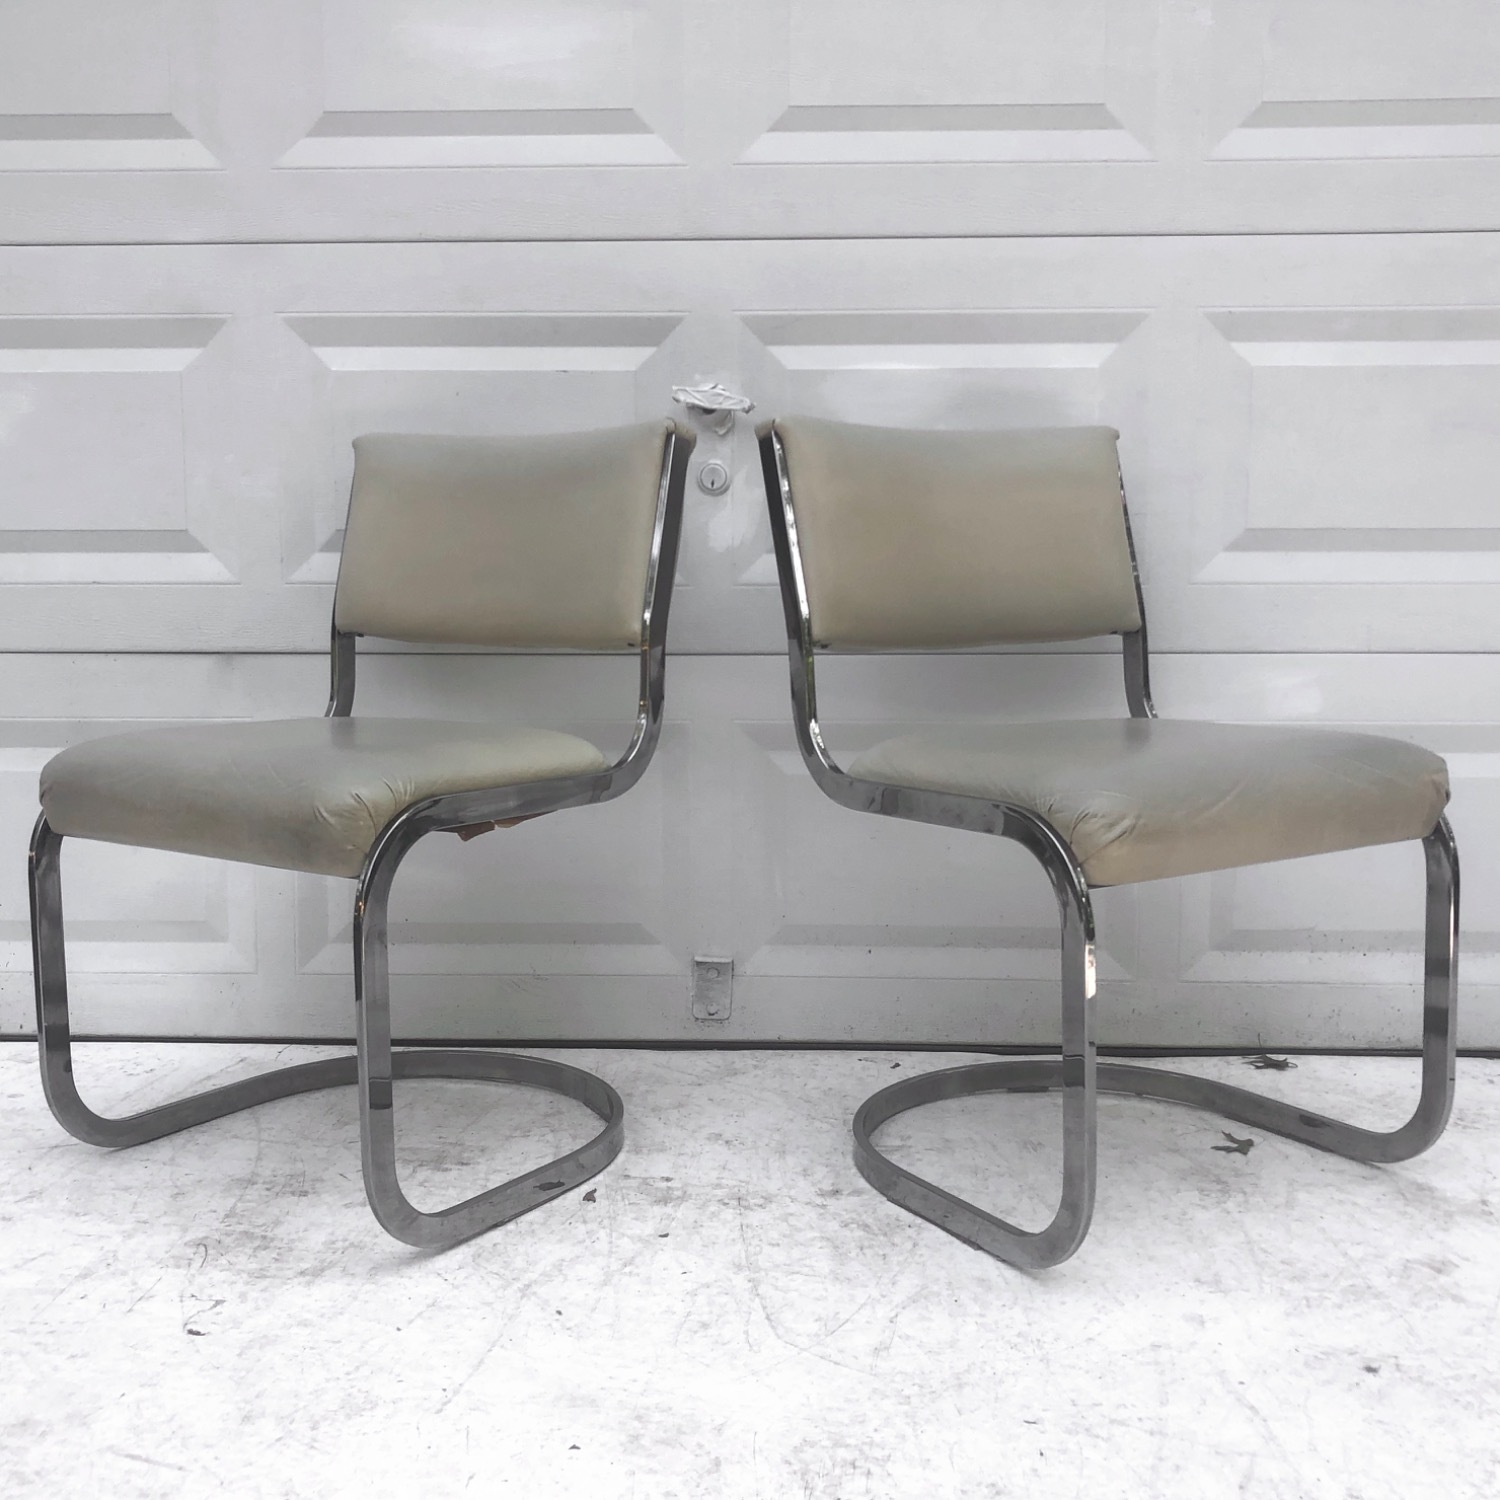 Vintage Modern Dining Chairs Set of 8 - image-3